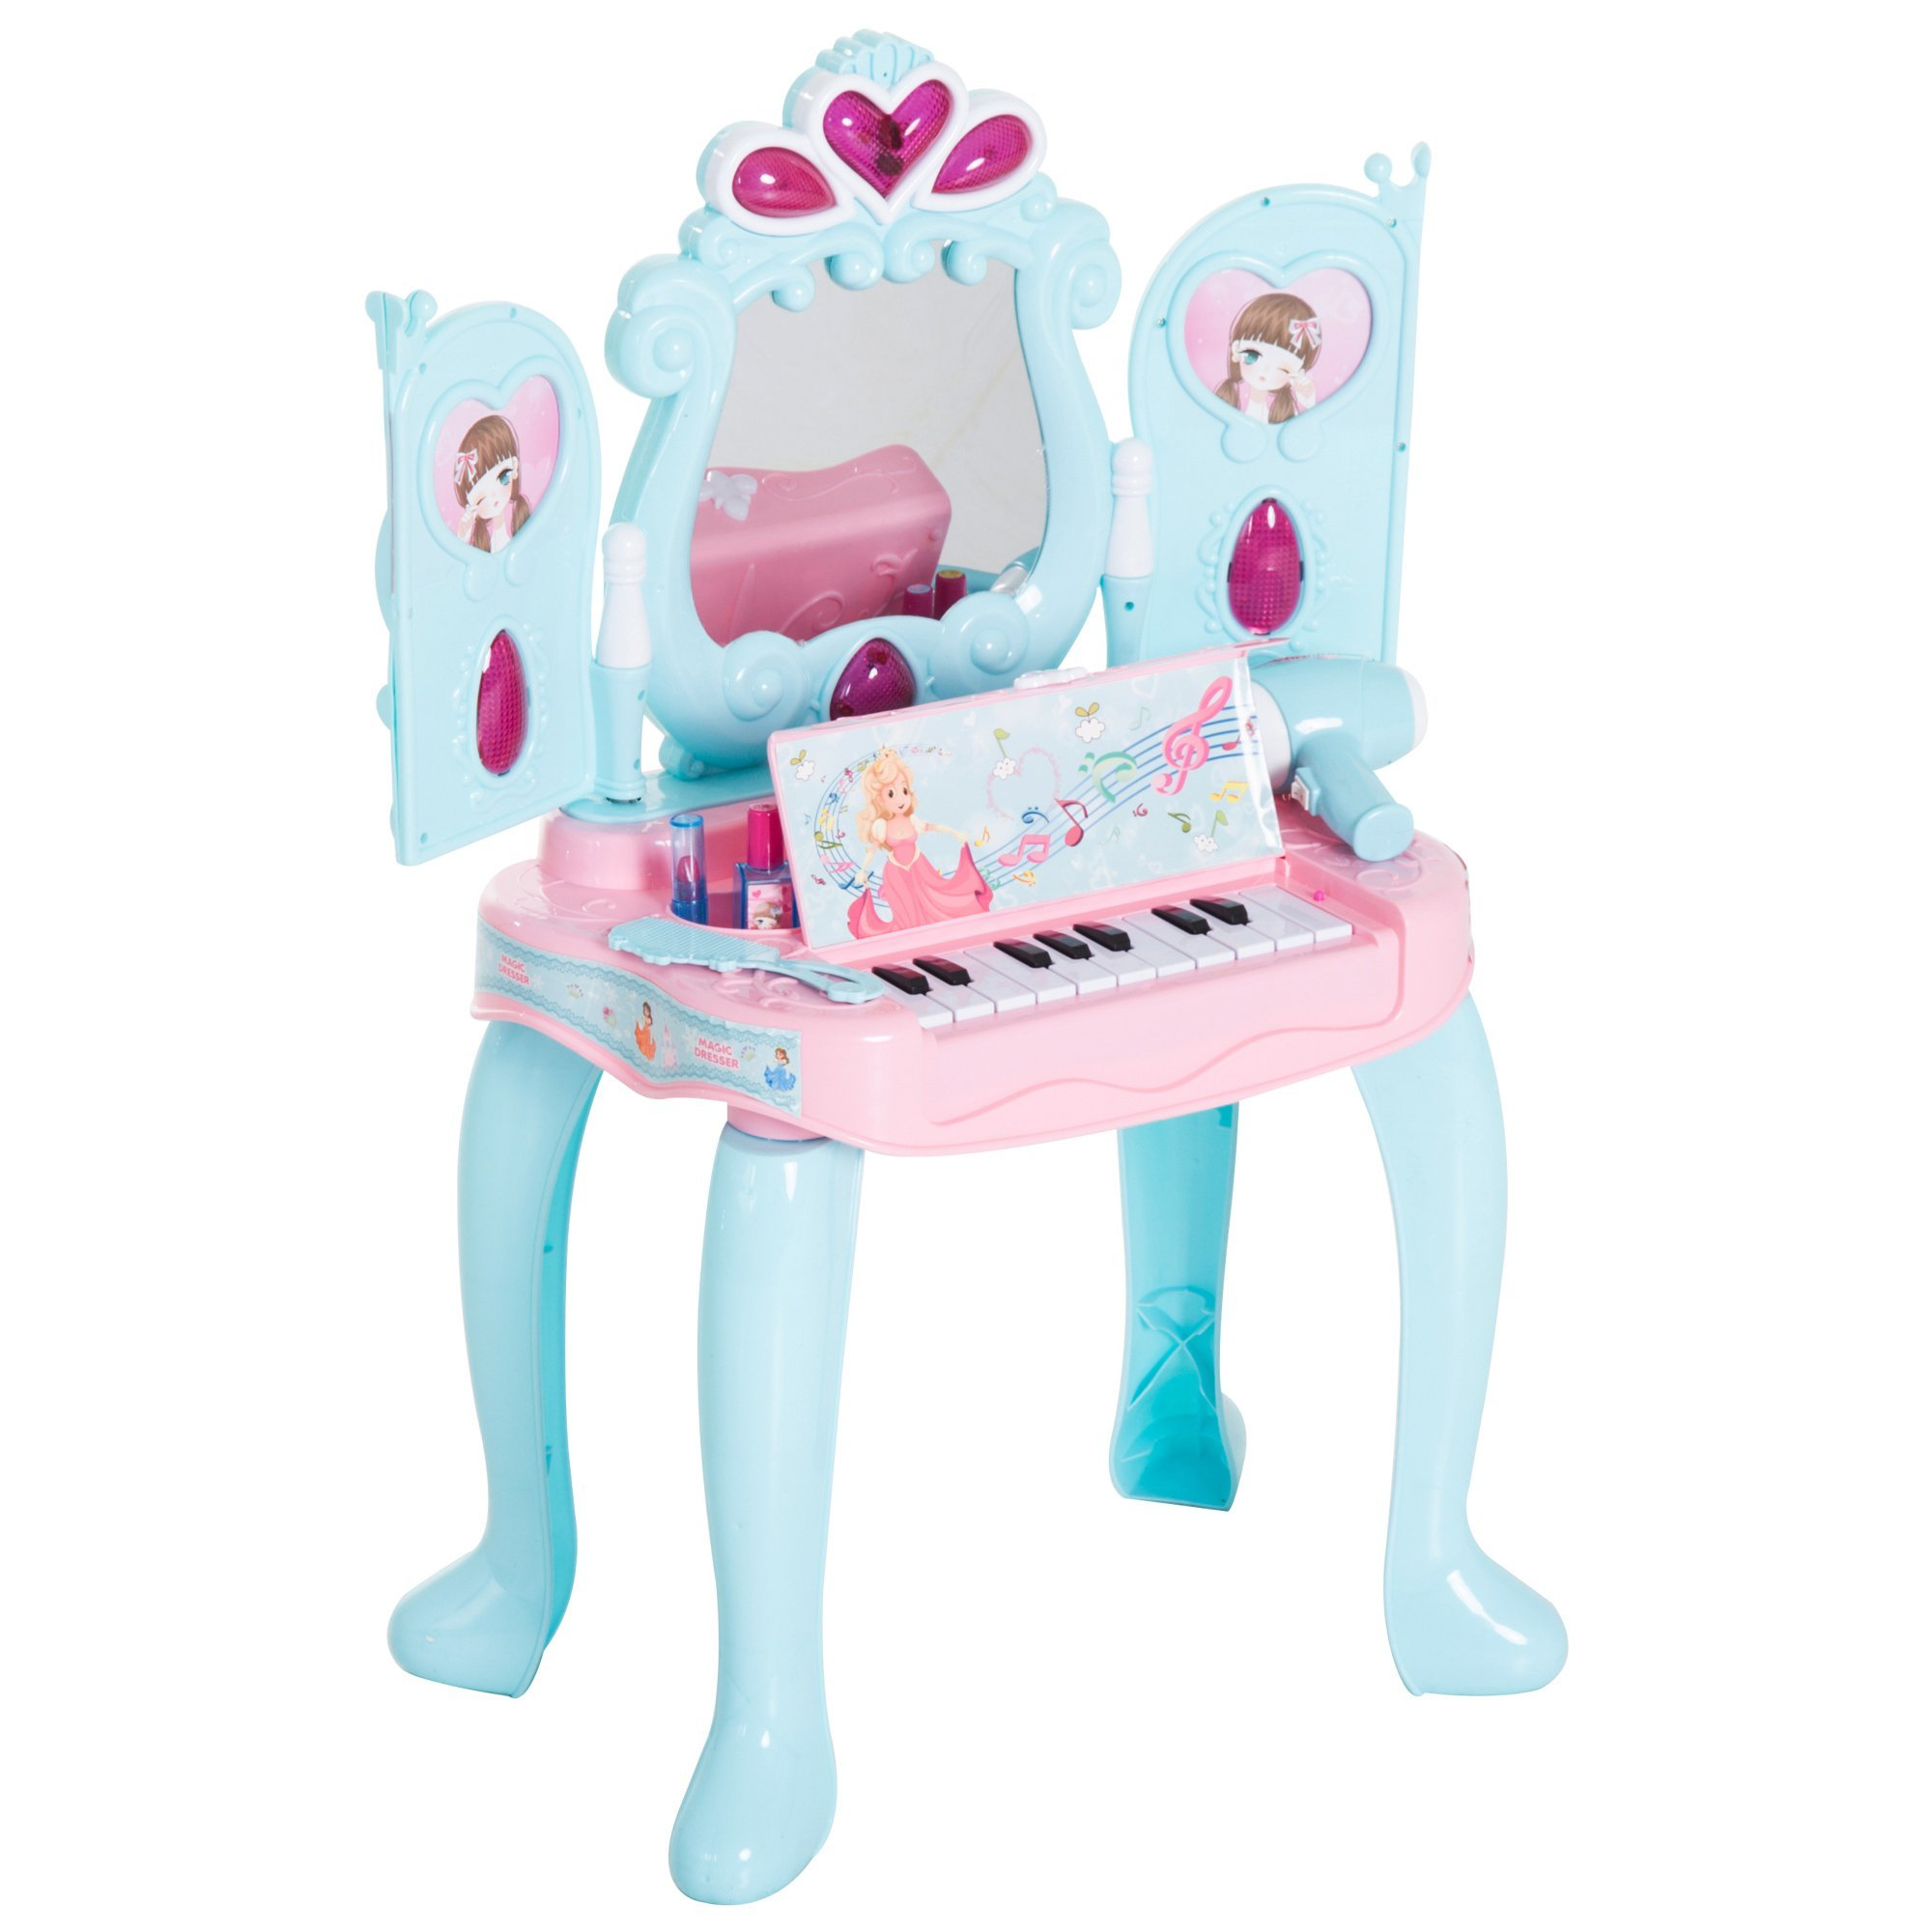 Qaba 2-in-1 Piano Vanity Table Princess Pretend Play Set with Lights, Sounds, and Accessories - Light Blue/Pink by Qaba